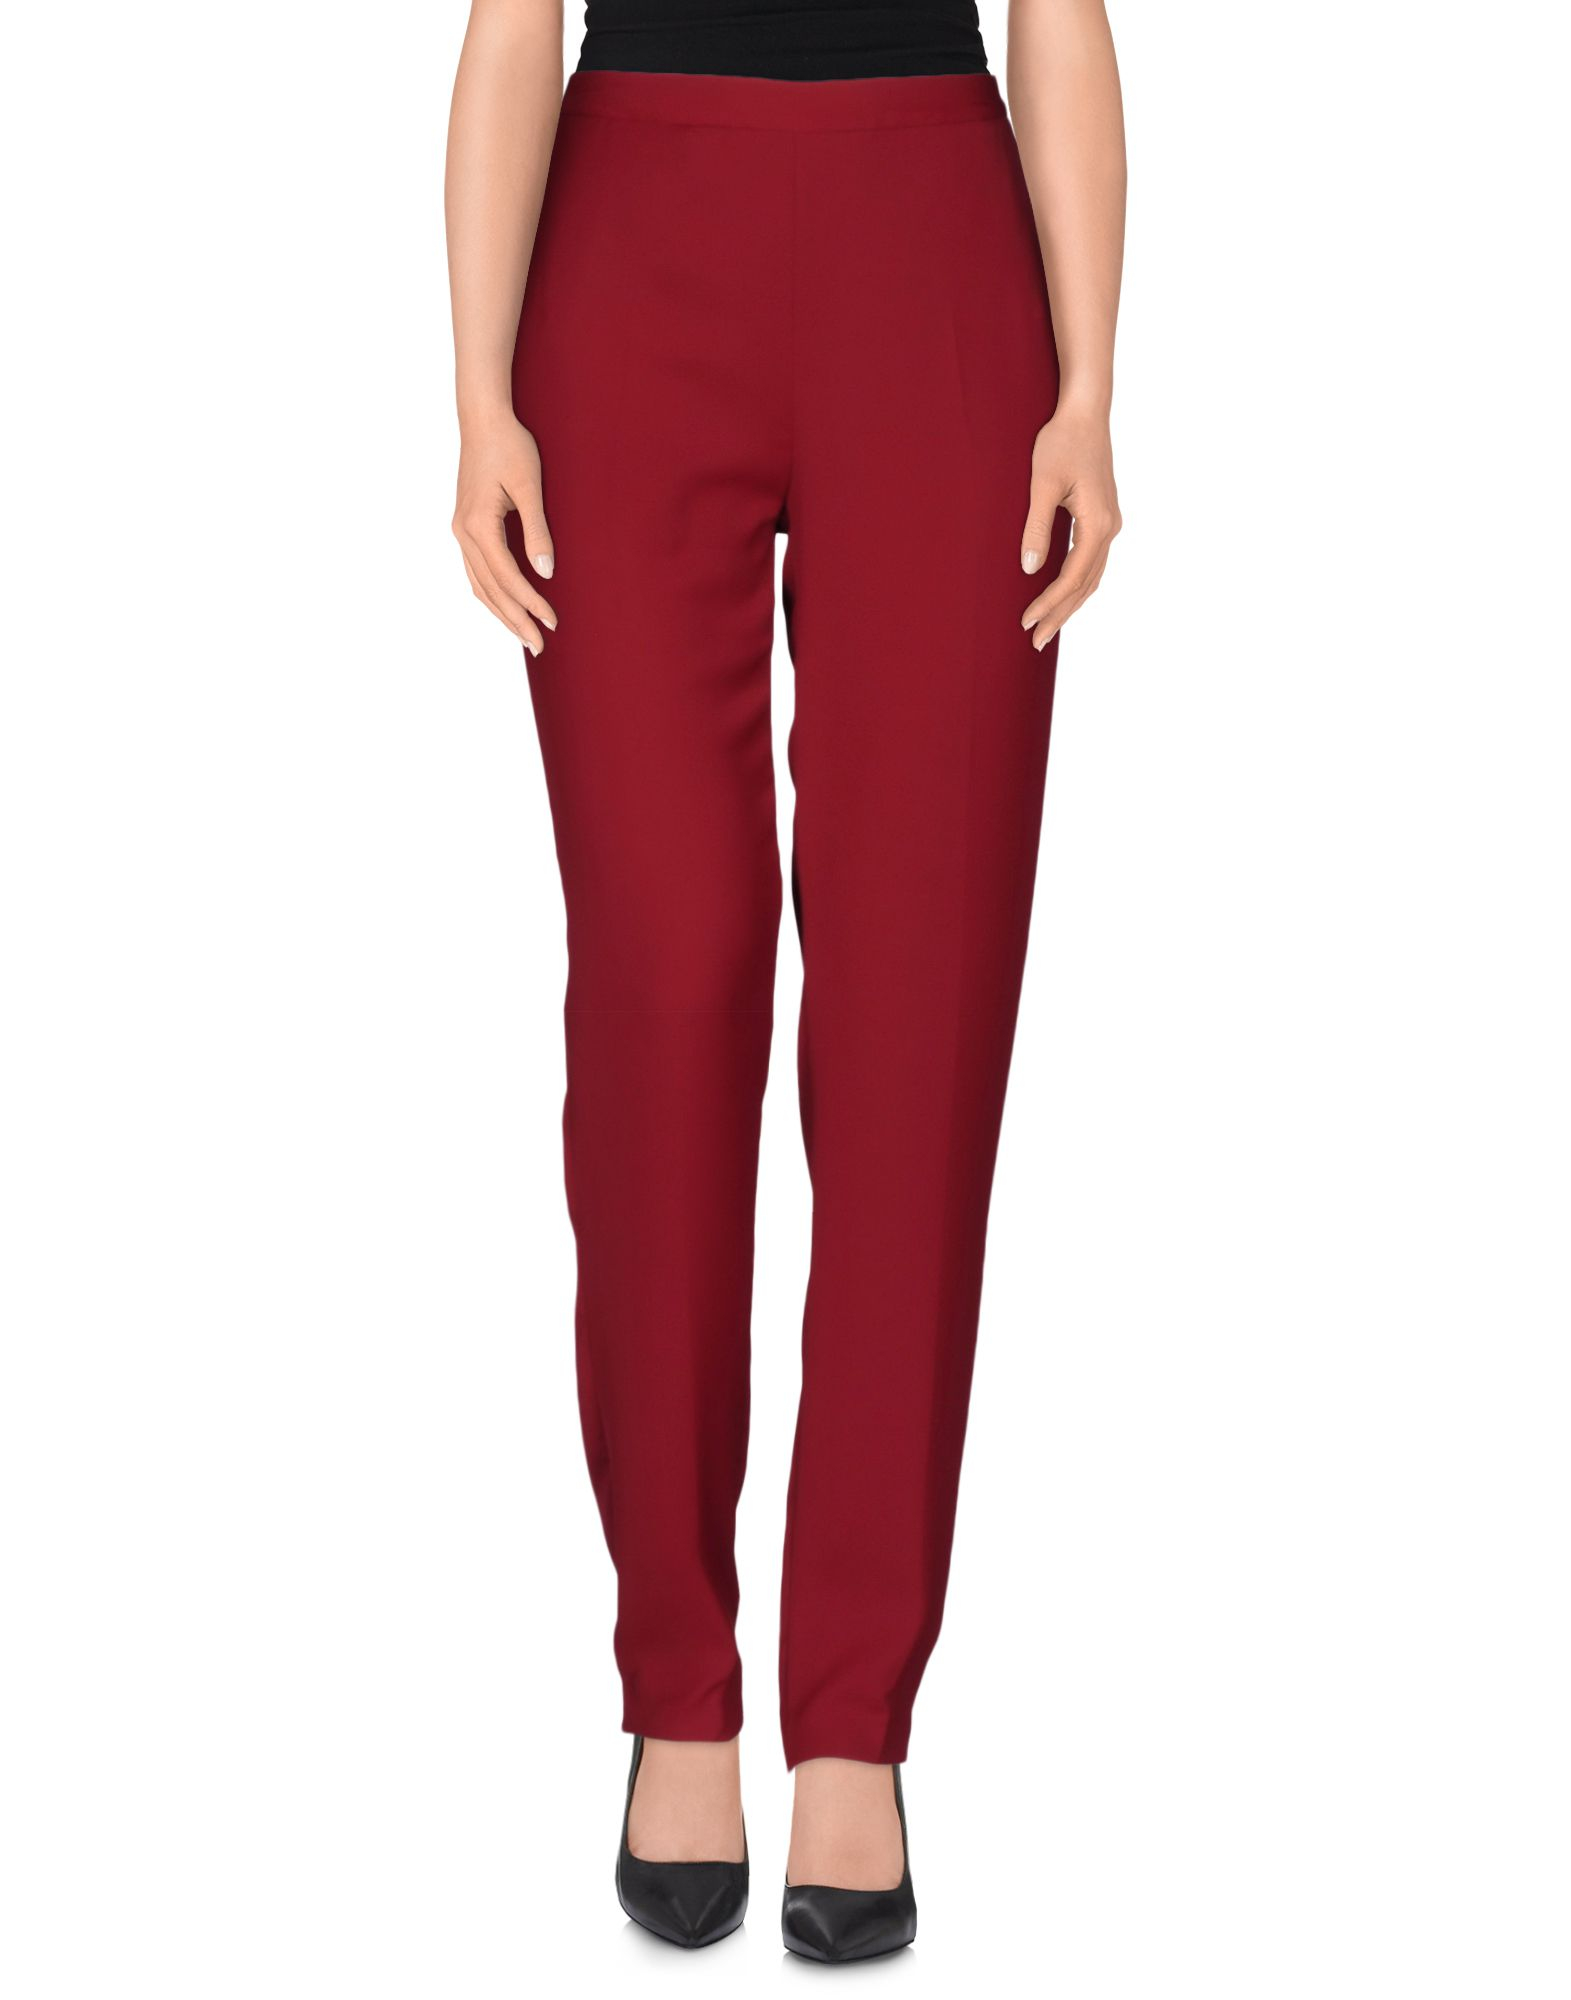 Maison Margiela Casual Pants In Red Lyst